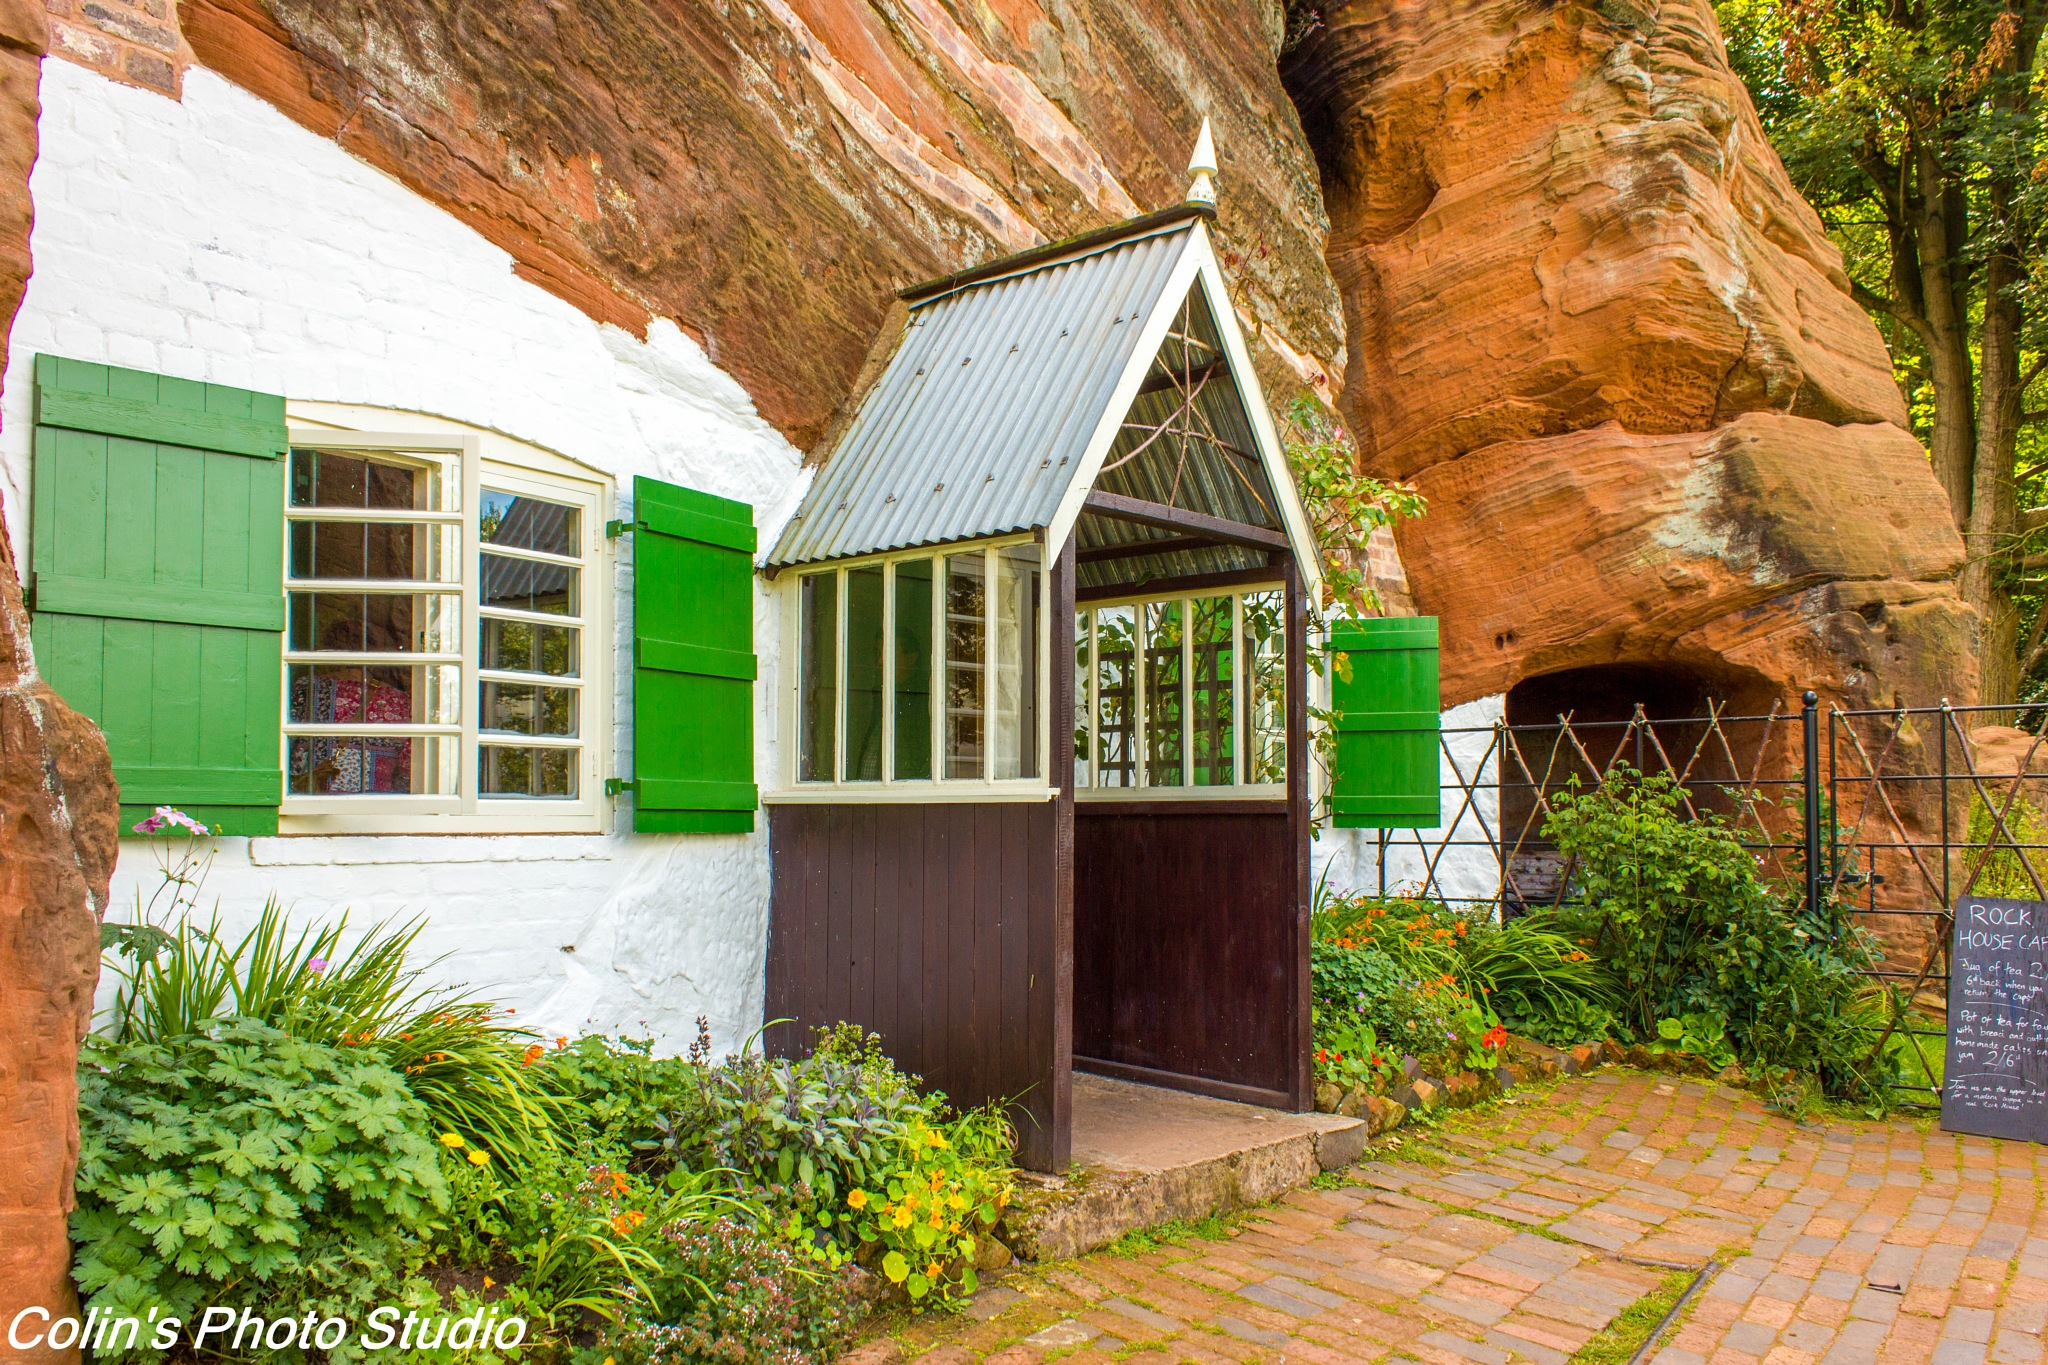 Rock House by Colin